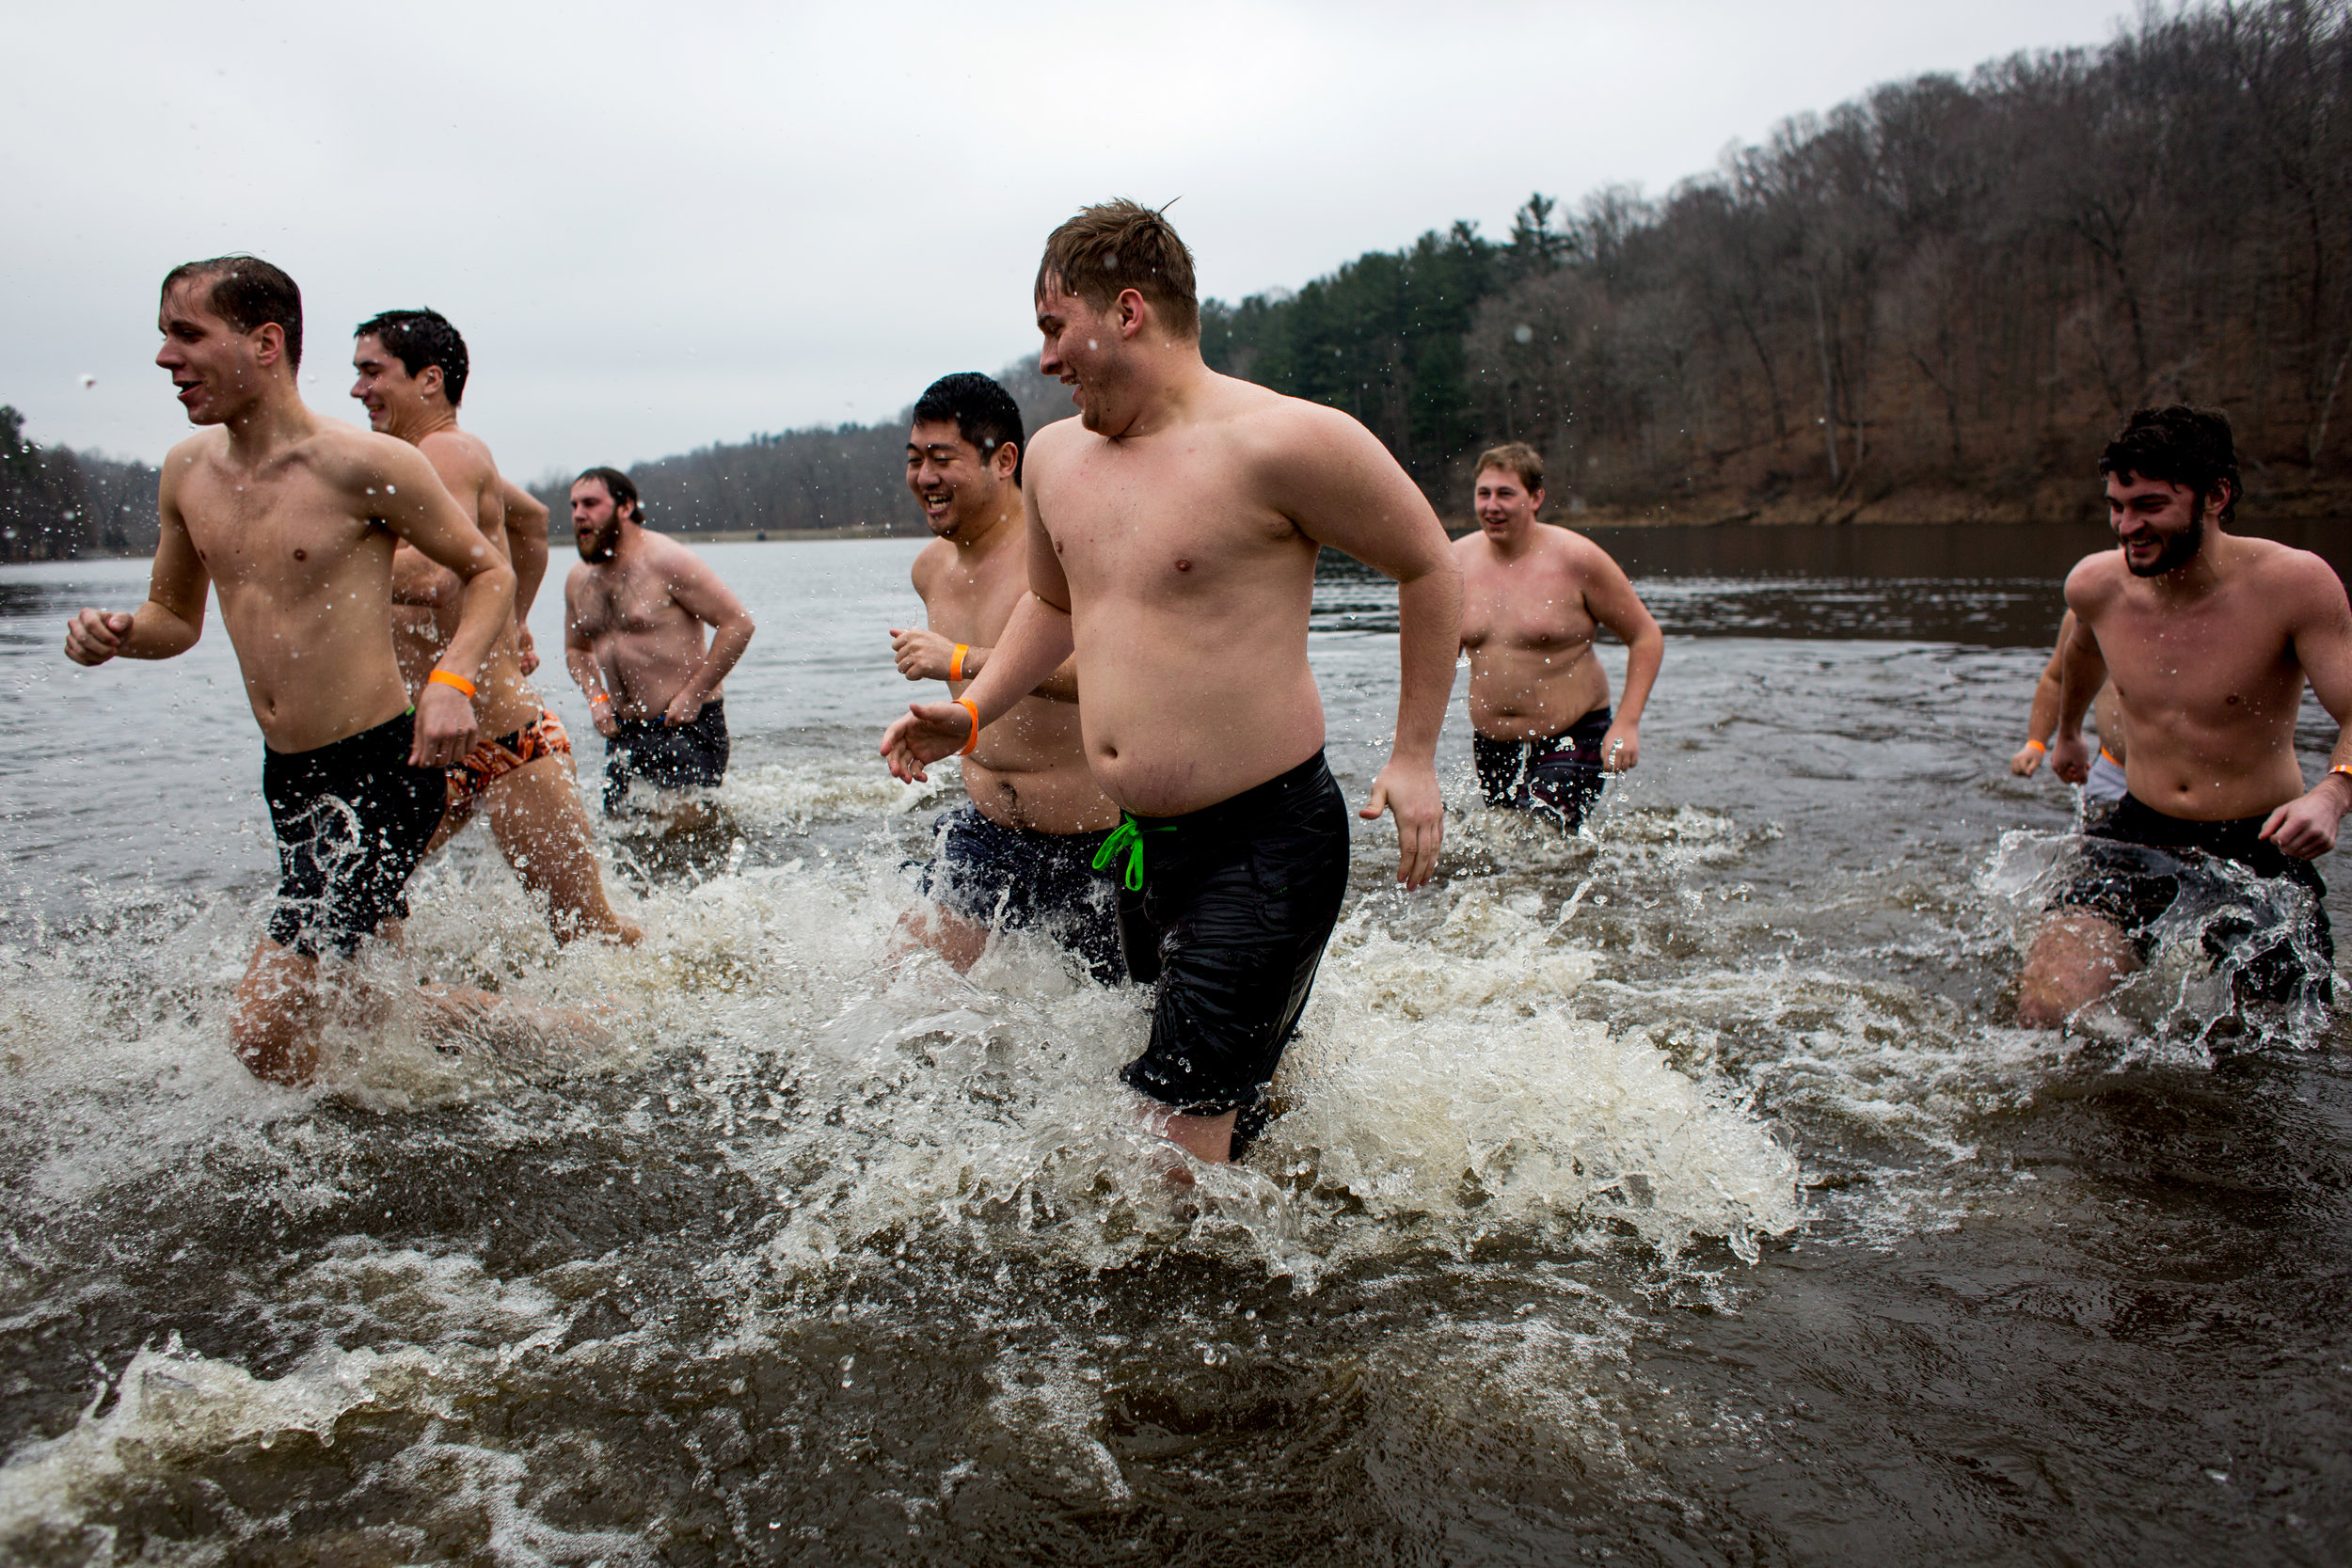 Participants ran back to shore after plunging into the frigid water during the annual plunge.